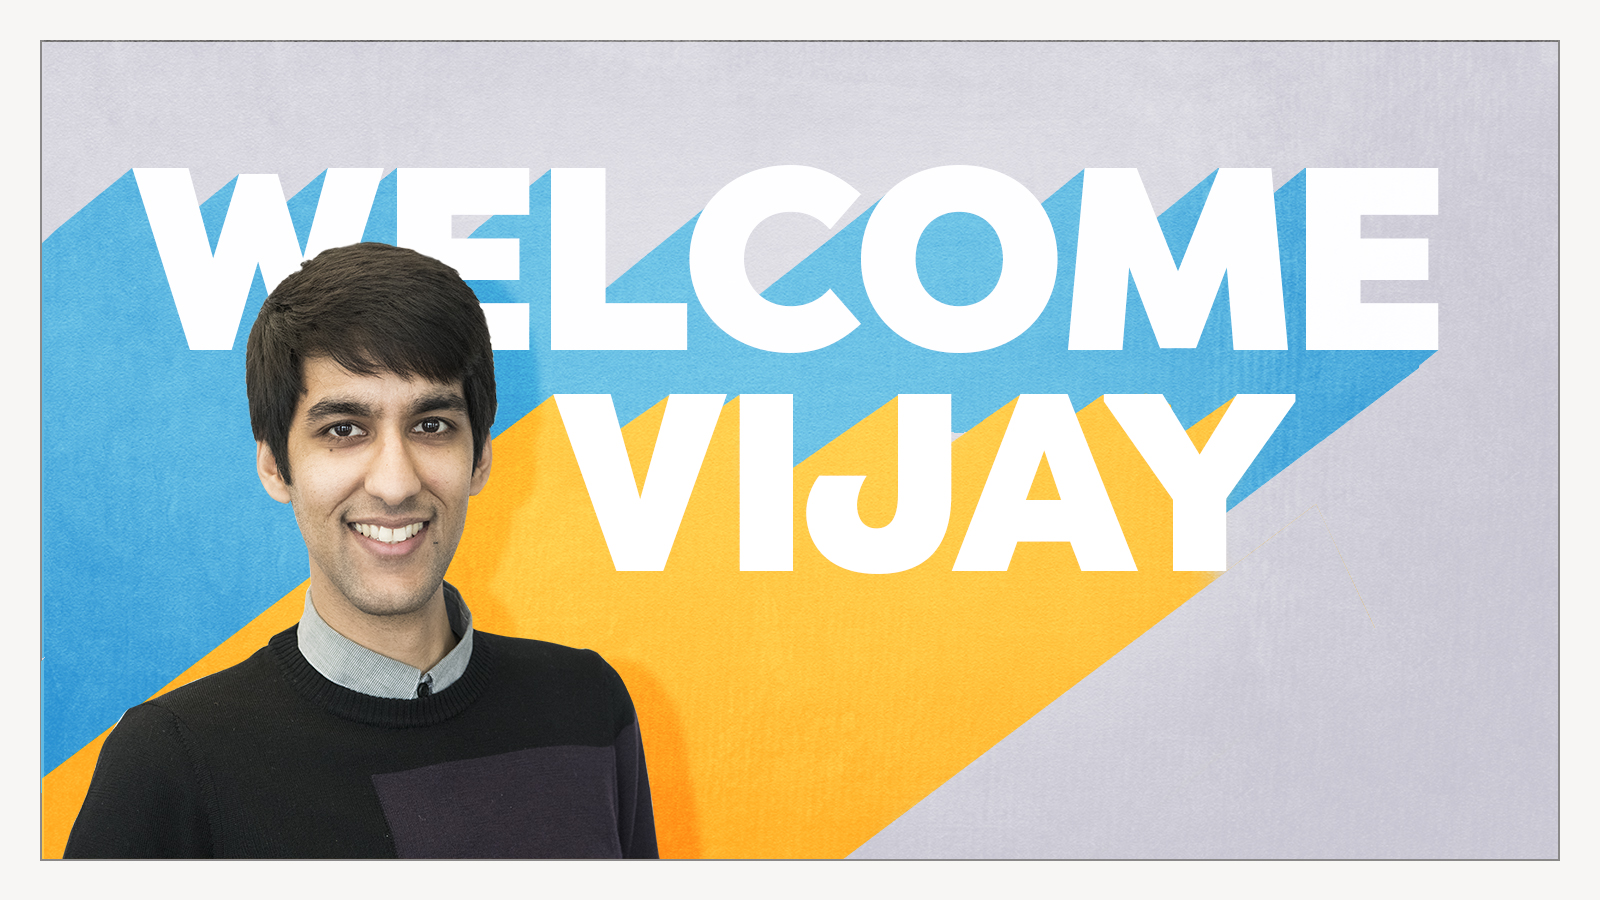 Welcome Vijay